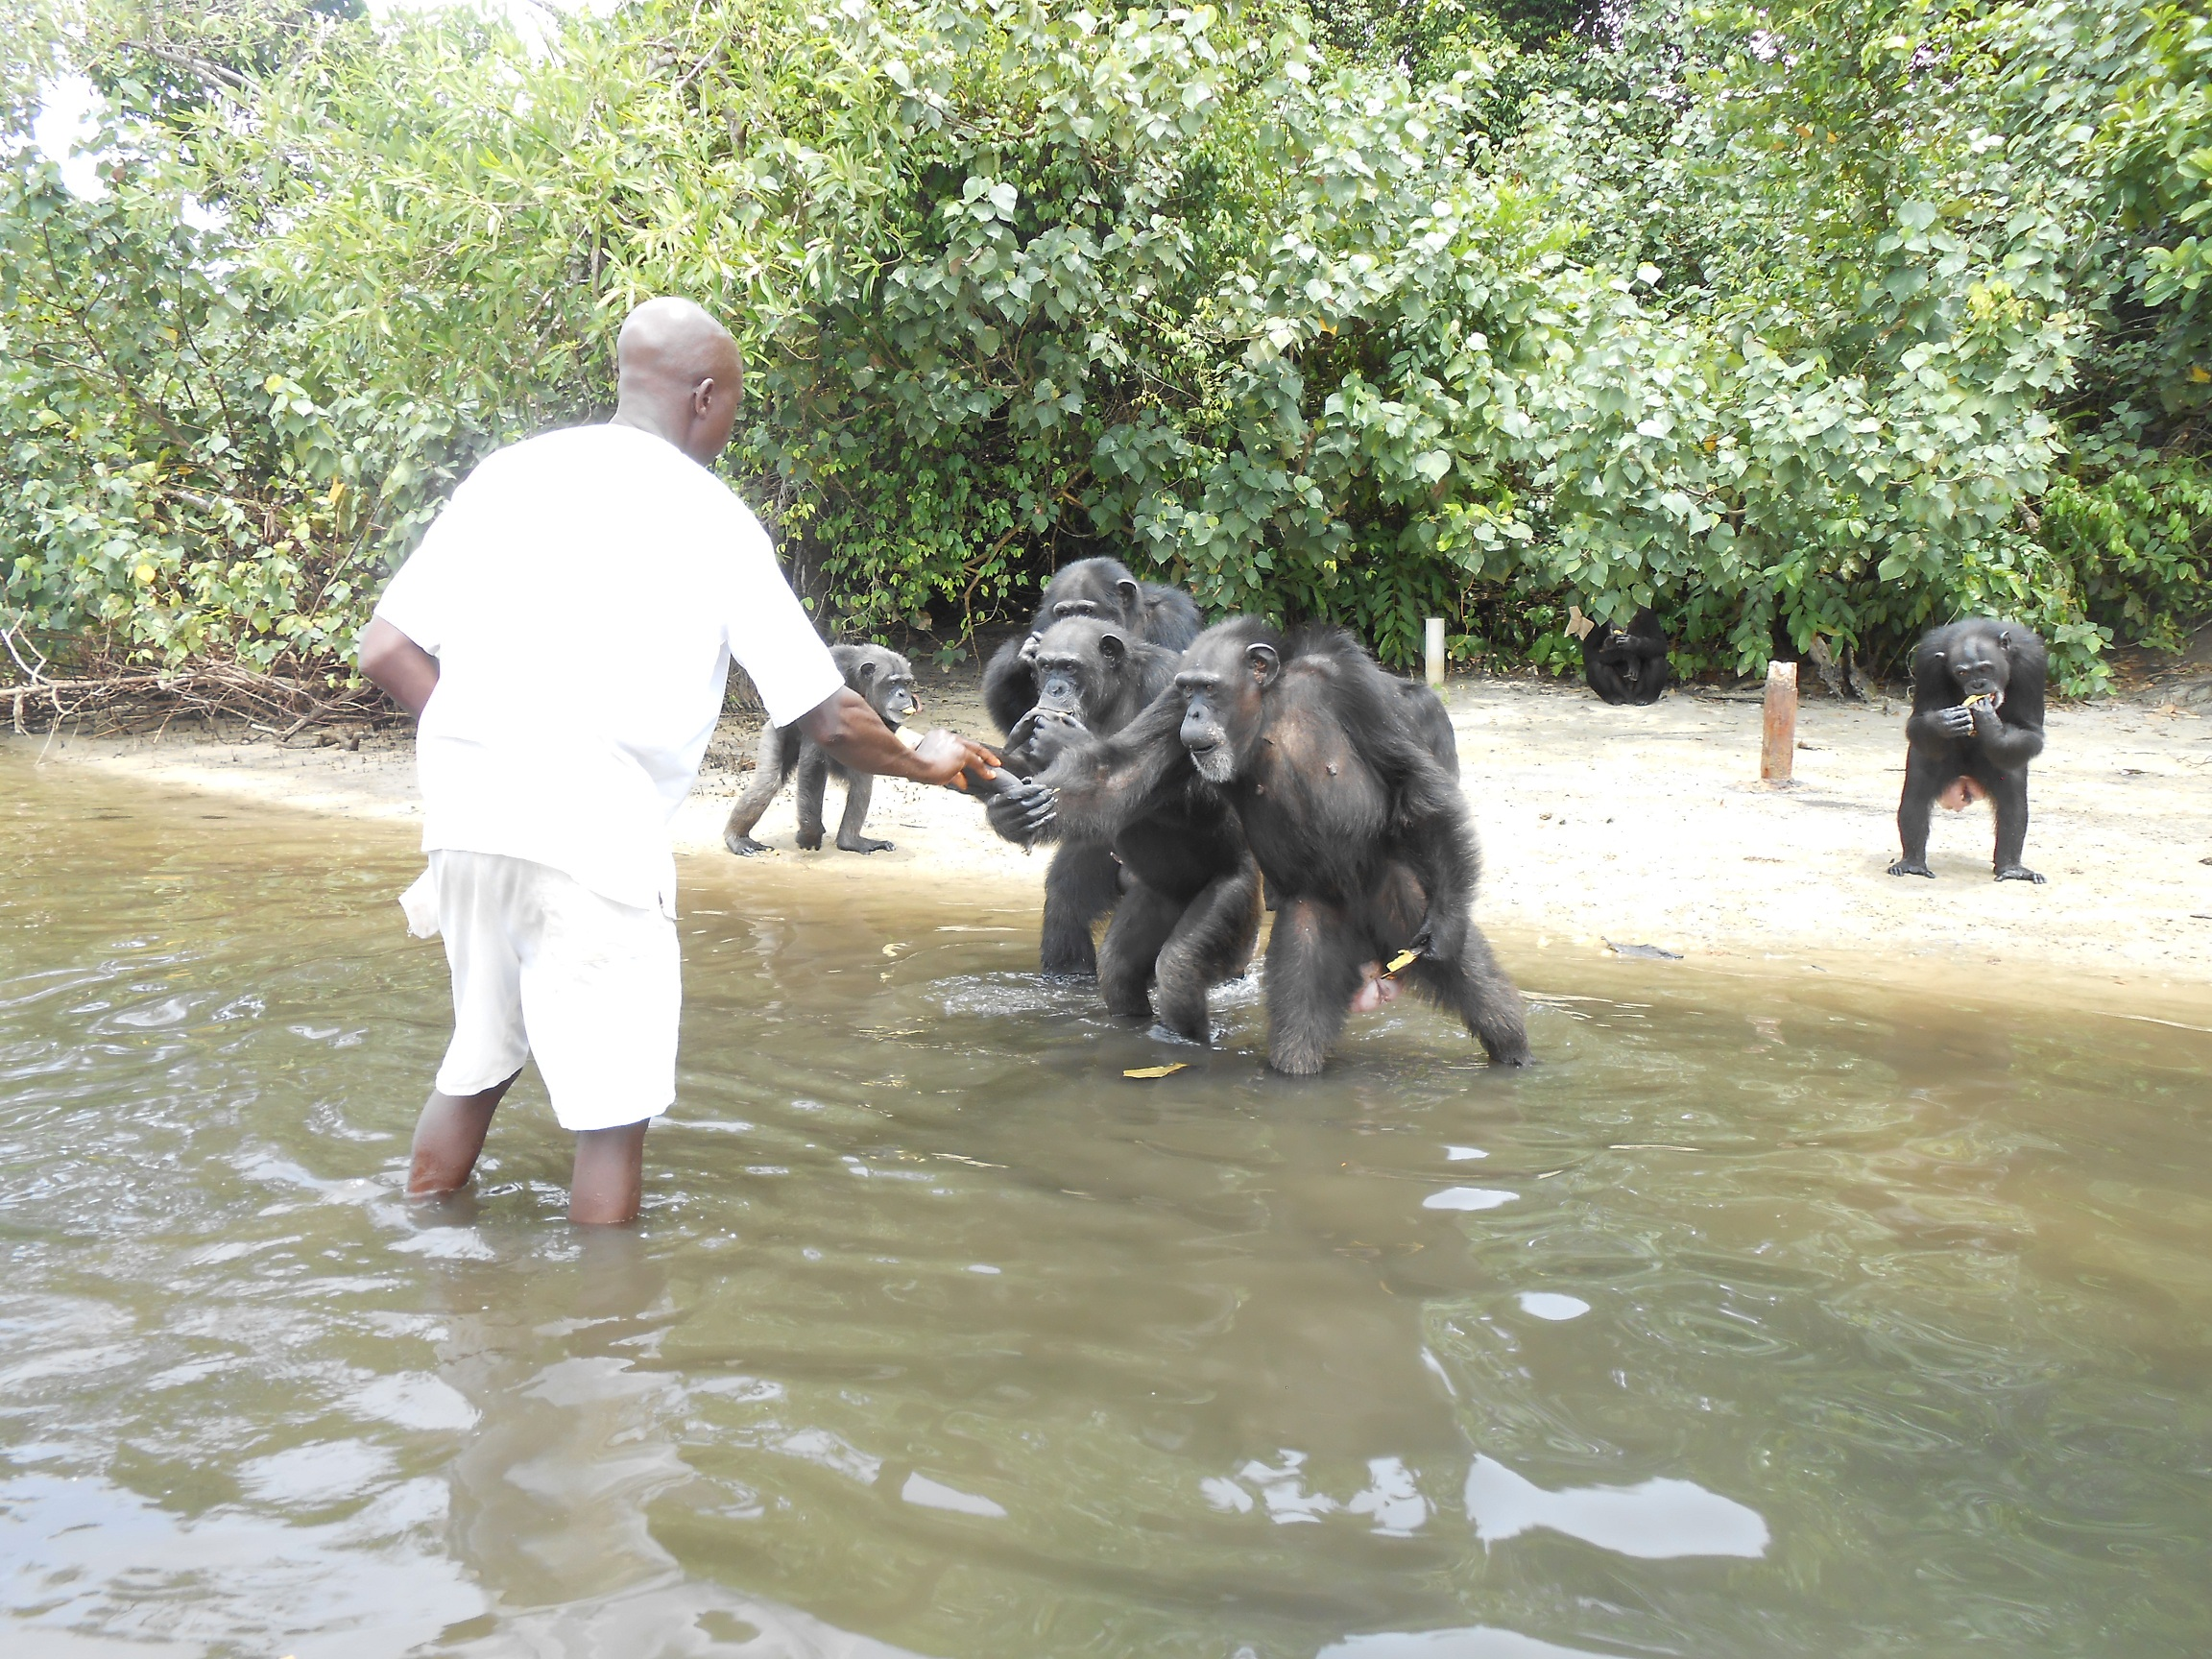 Ben hands out plantains to hungry chimpanzees. Source: Agnes Souchal.